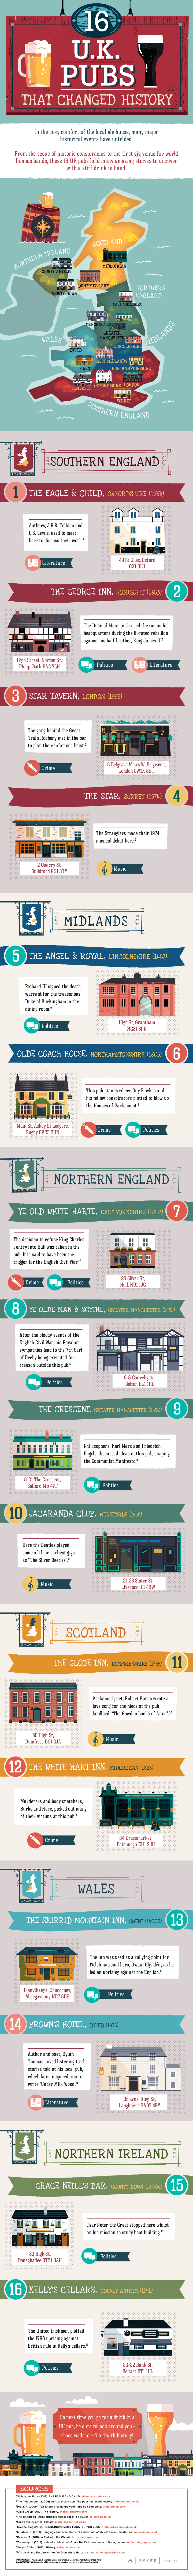 16-UK-pubs-that-changed-history